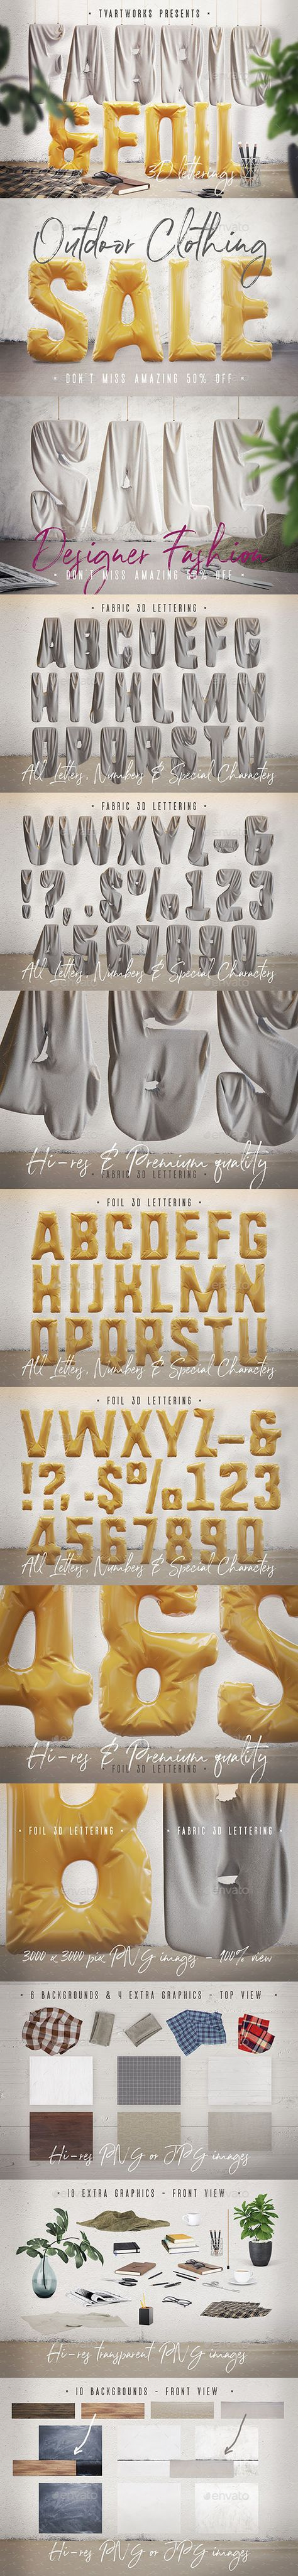 3D Graphics & Renders - Foil & Fabric Lettering Duo